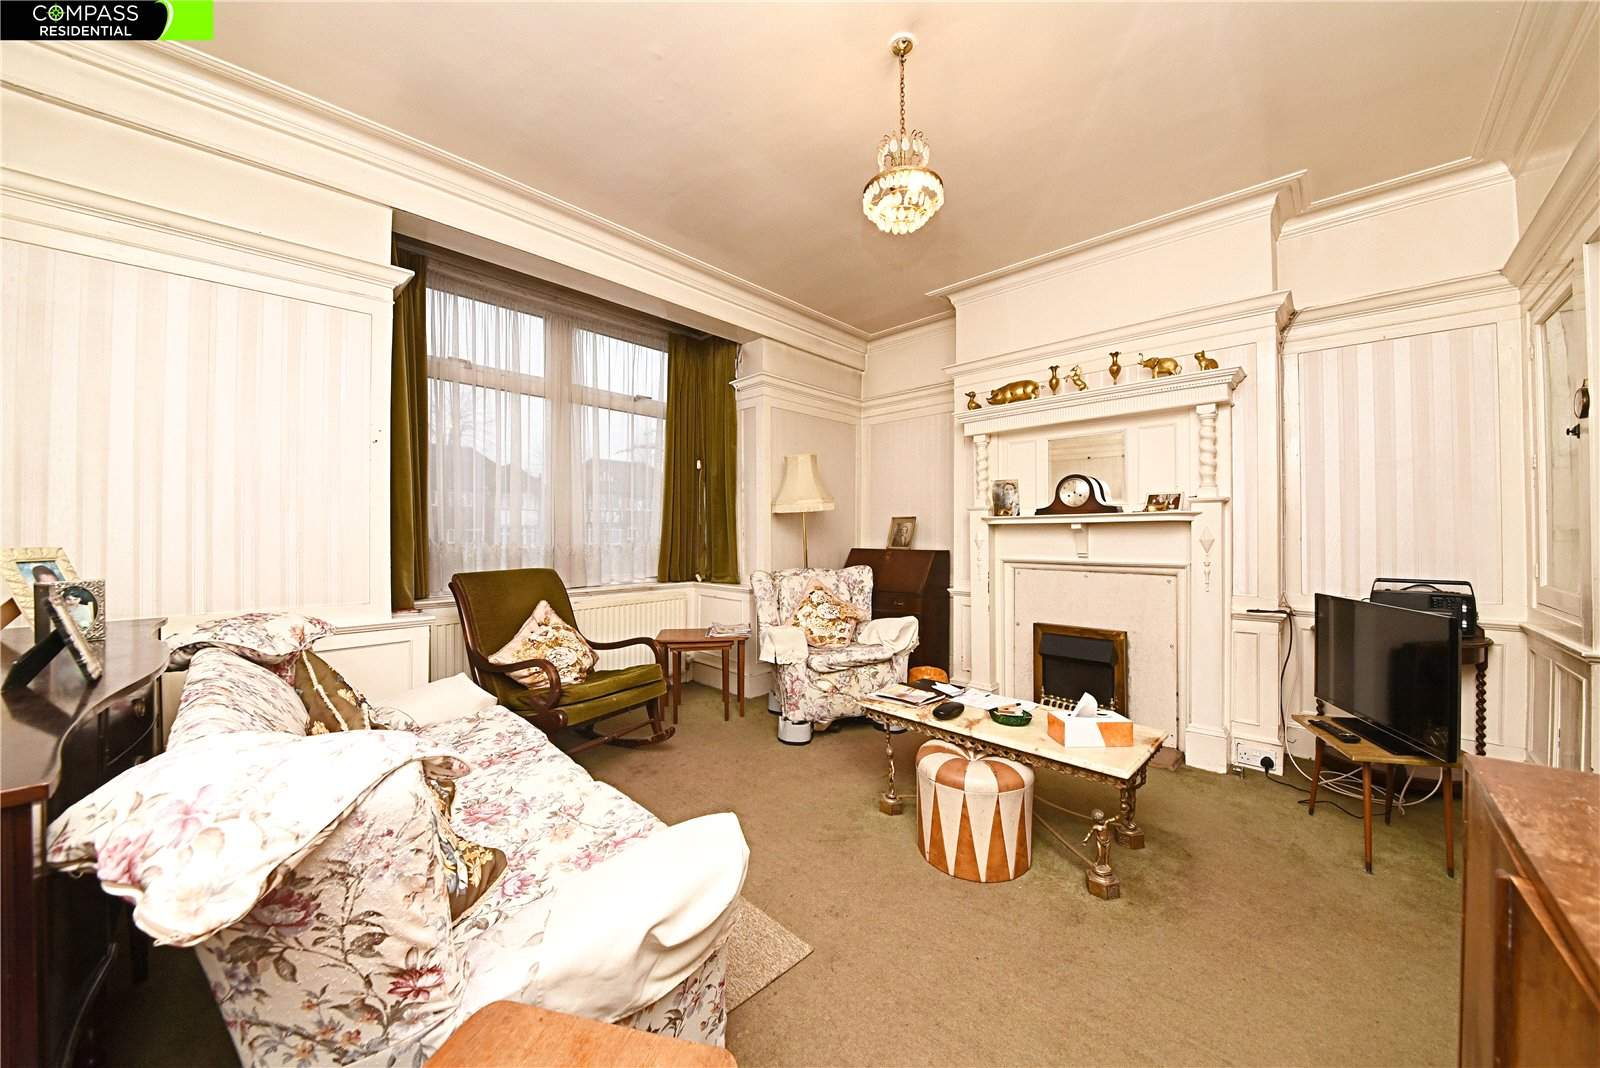 3 bed house for sale in Whetstone, N20 9PT  - Property Image 2